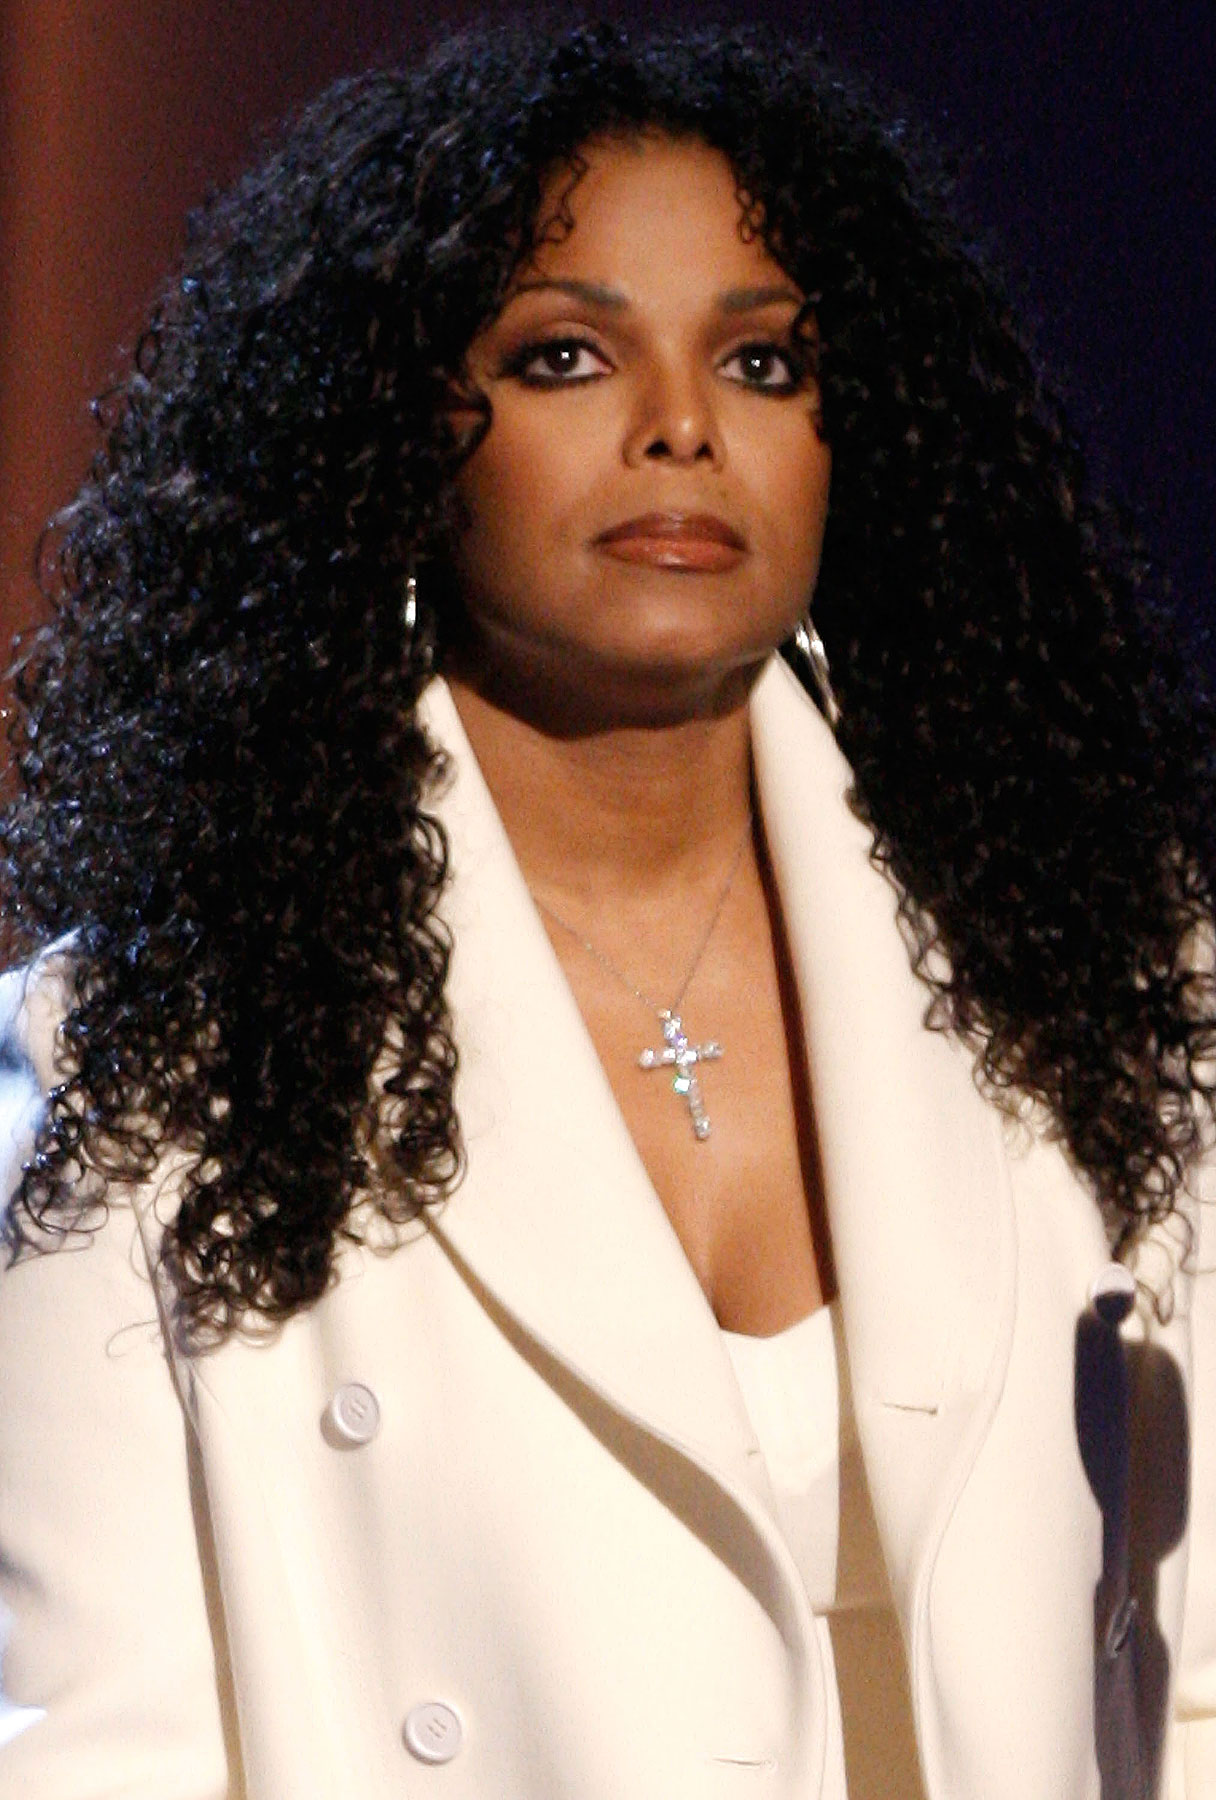 Janet Jackson To Do MJ Tribute at VMAs